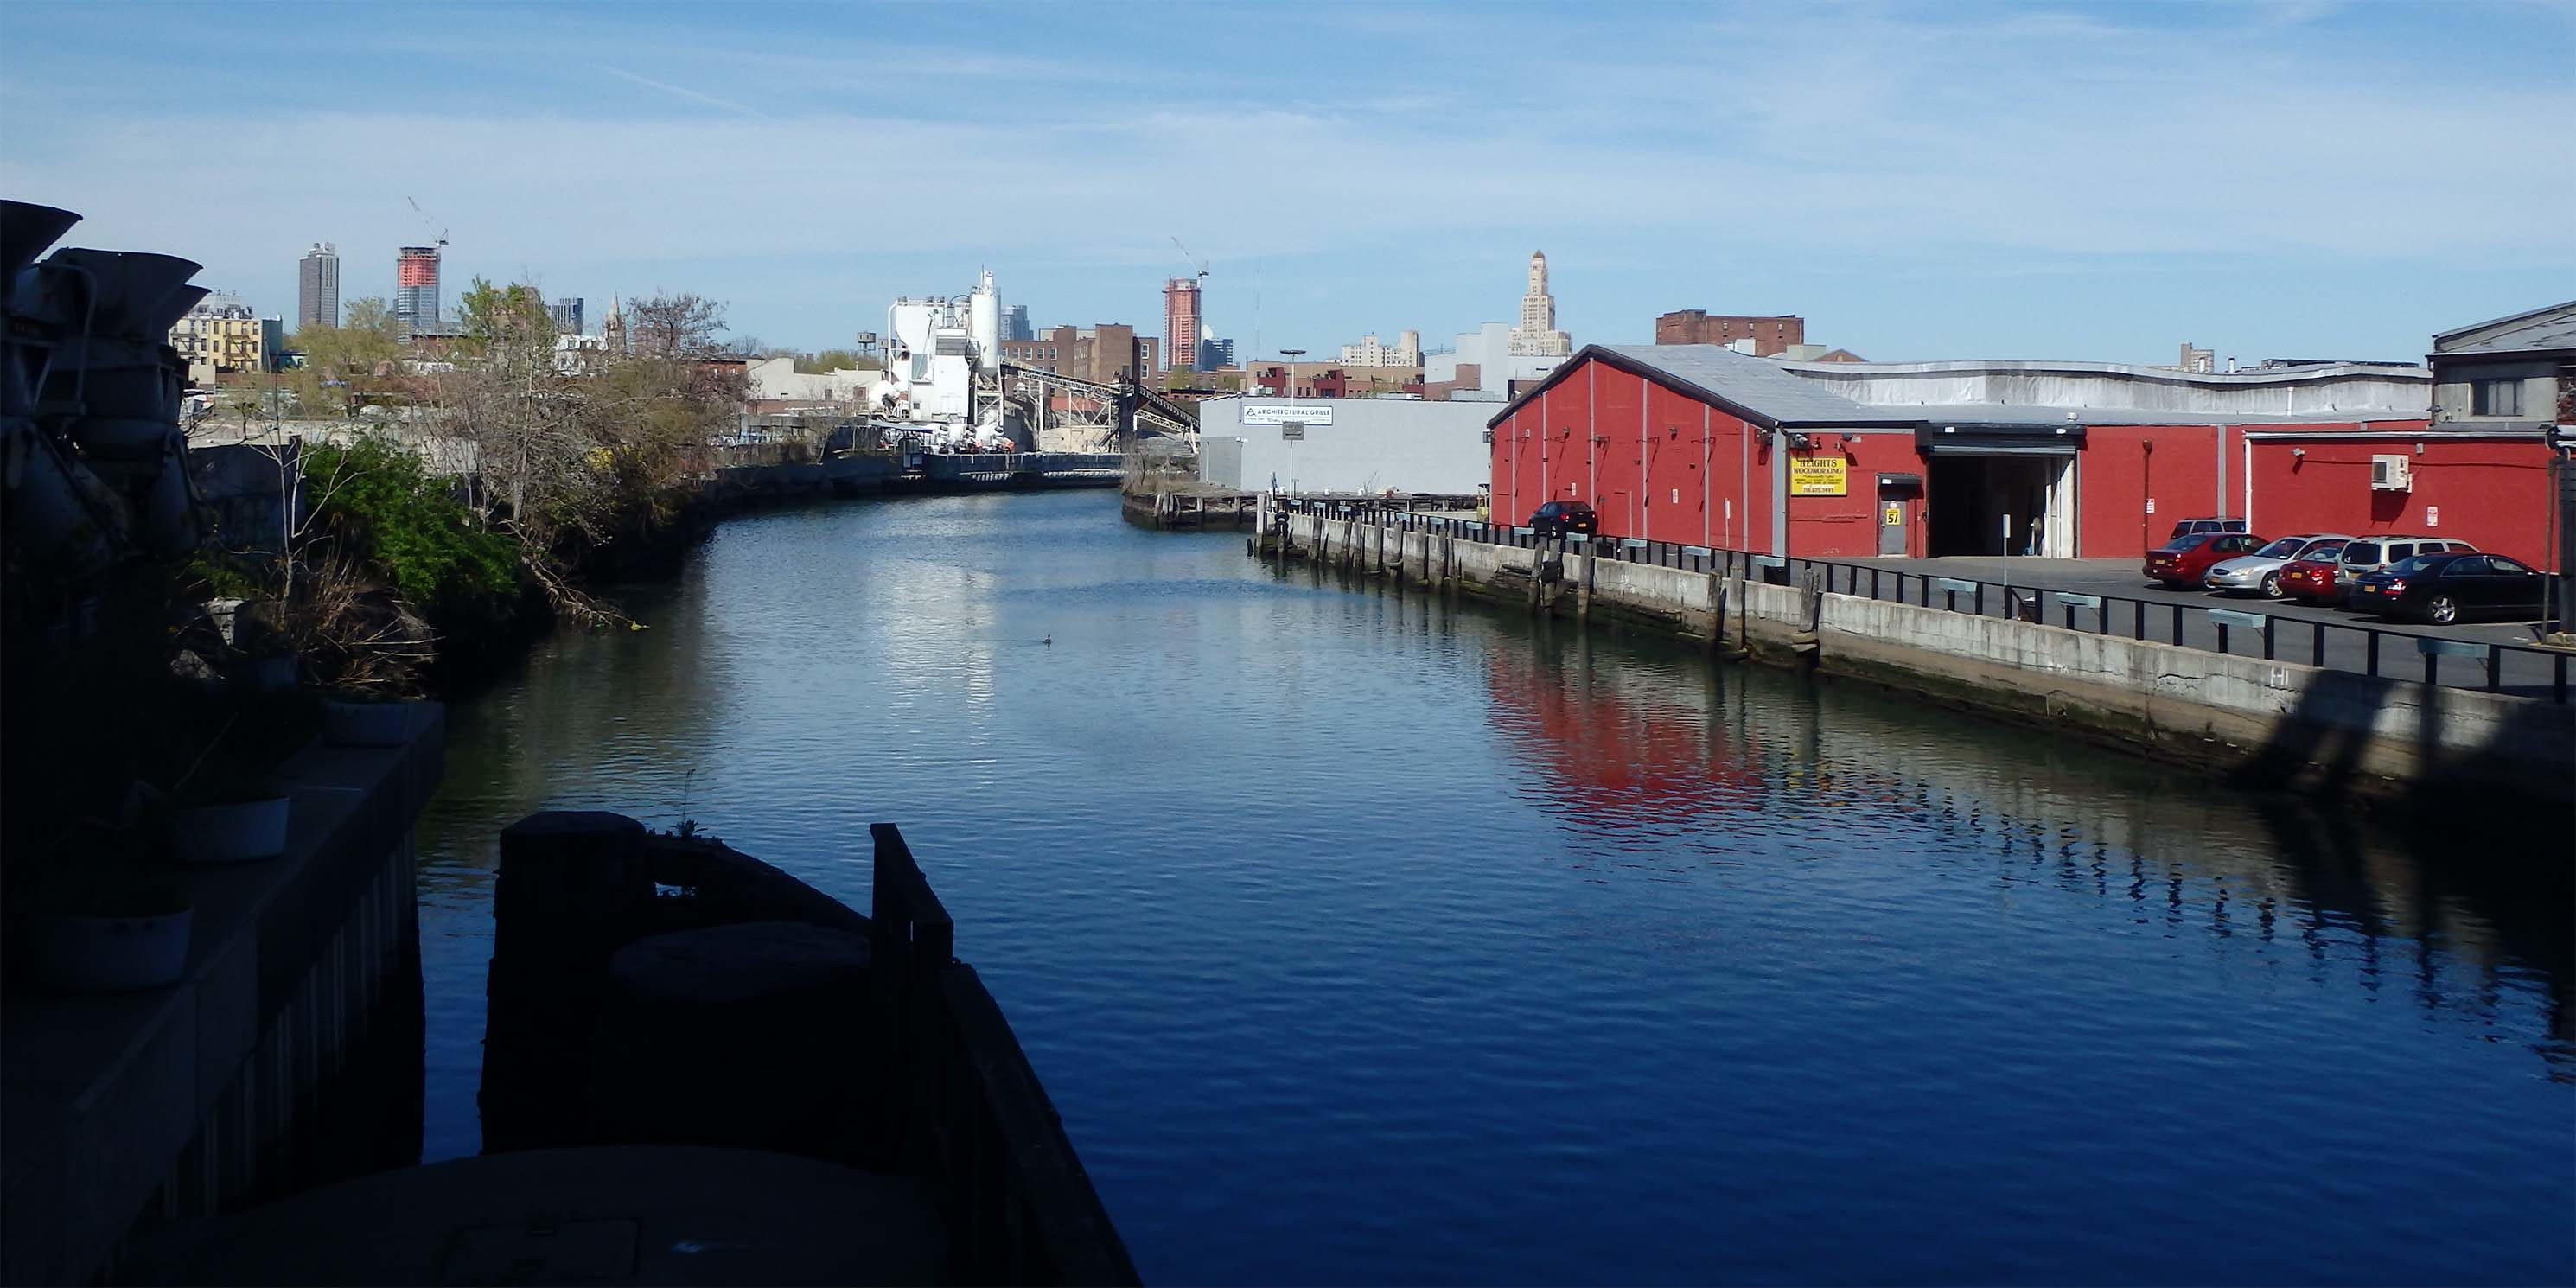 Gowanus Canal with industrial buildings along shoreline